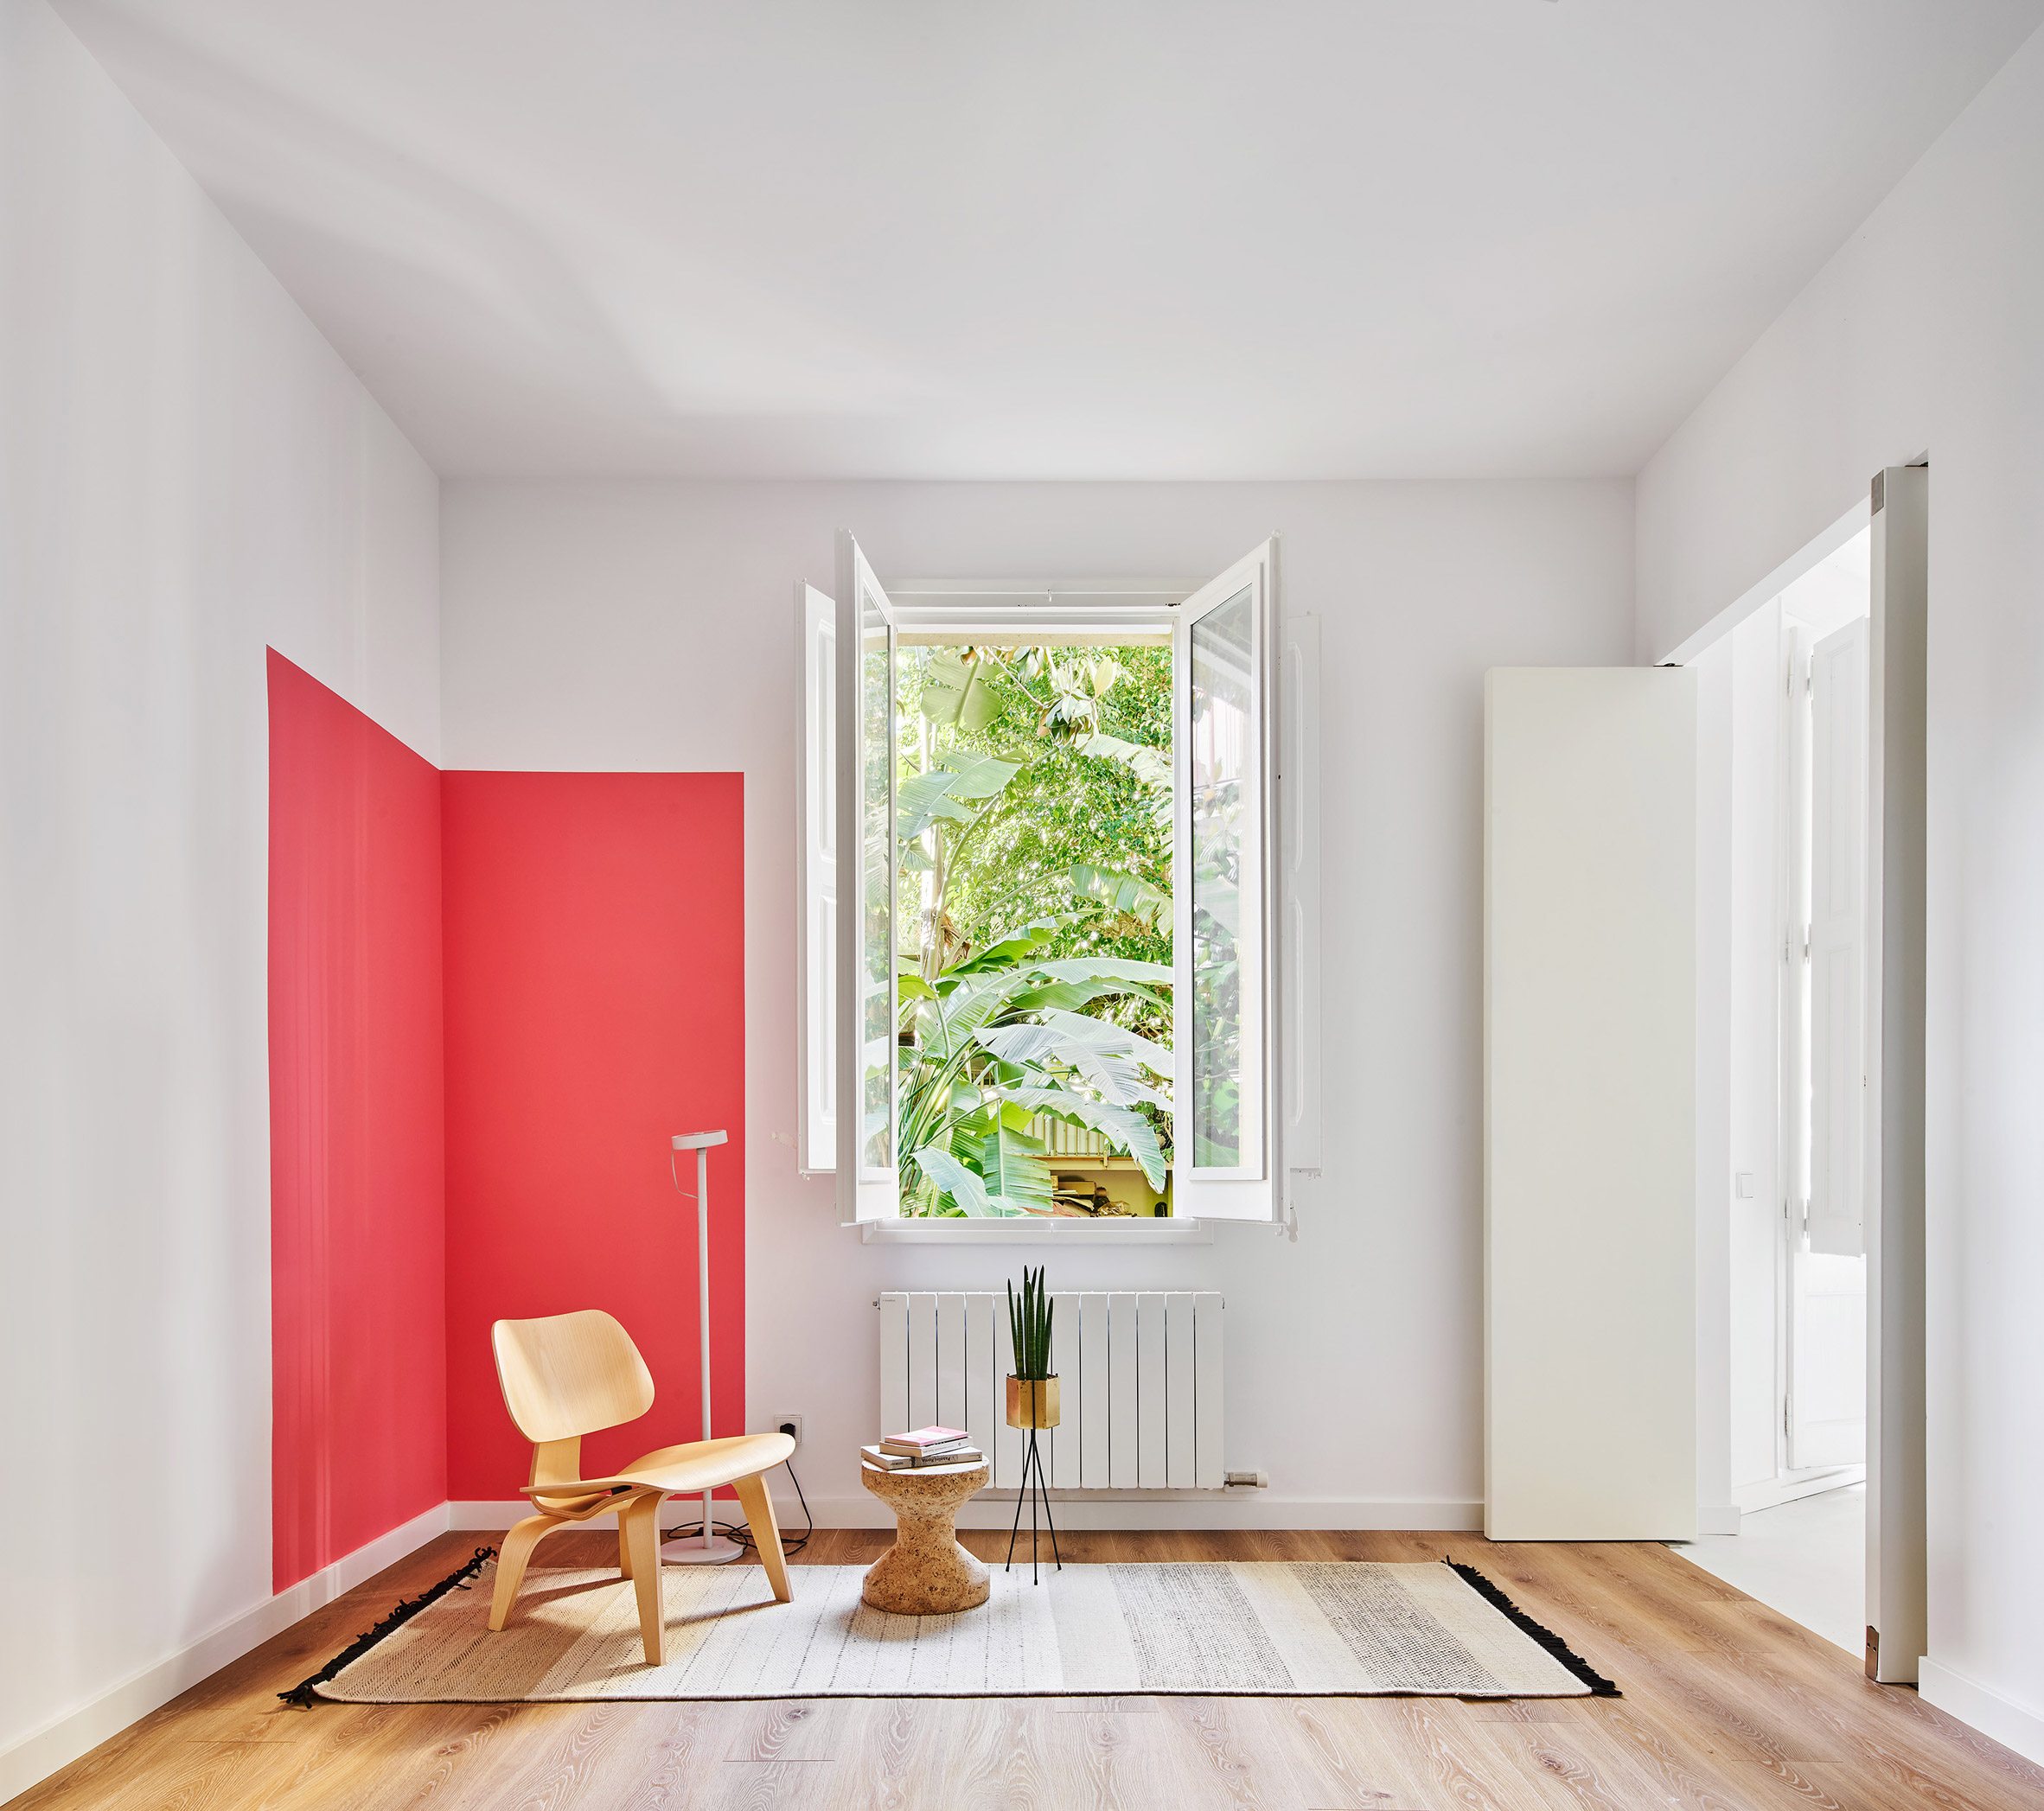 This space is accented with a bright red square that adds interest to the space easily